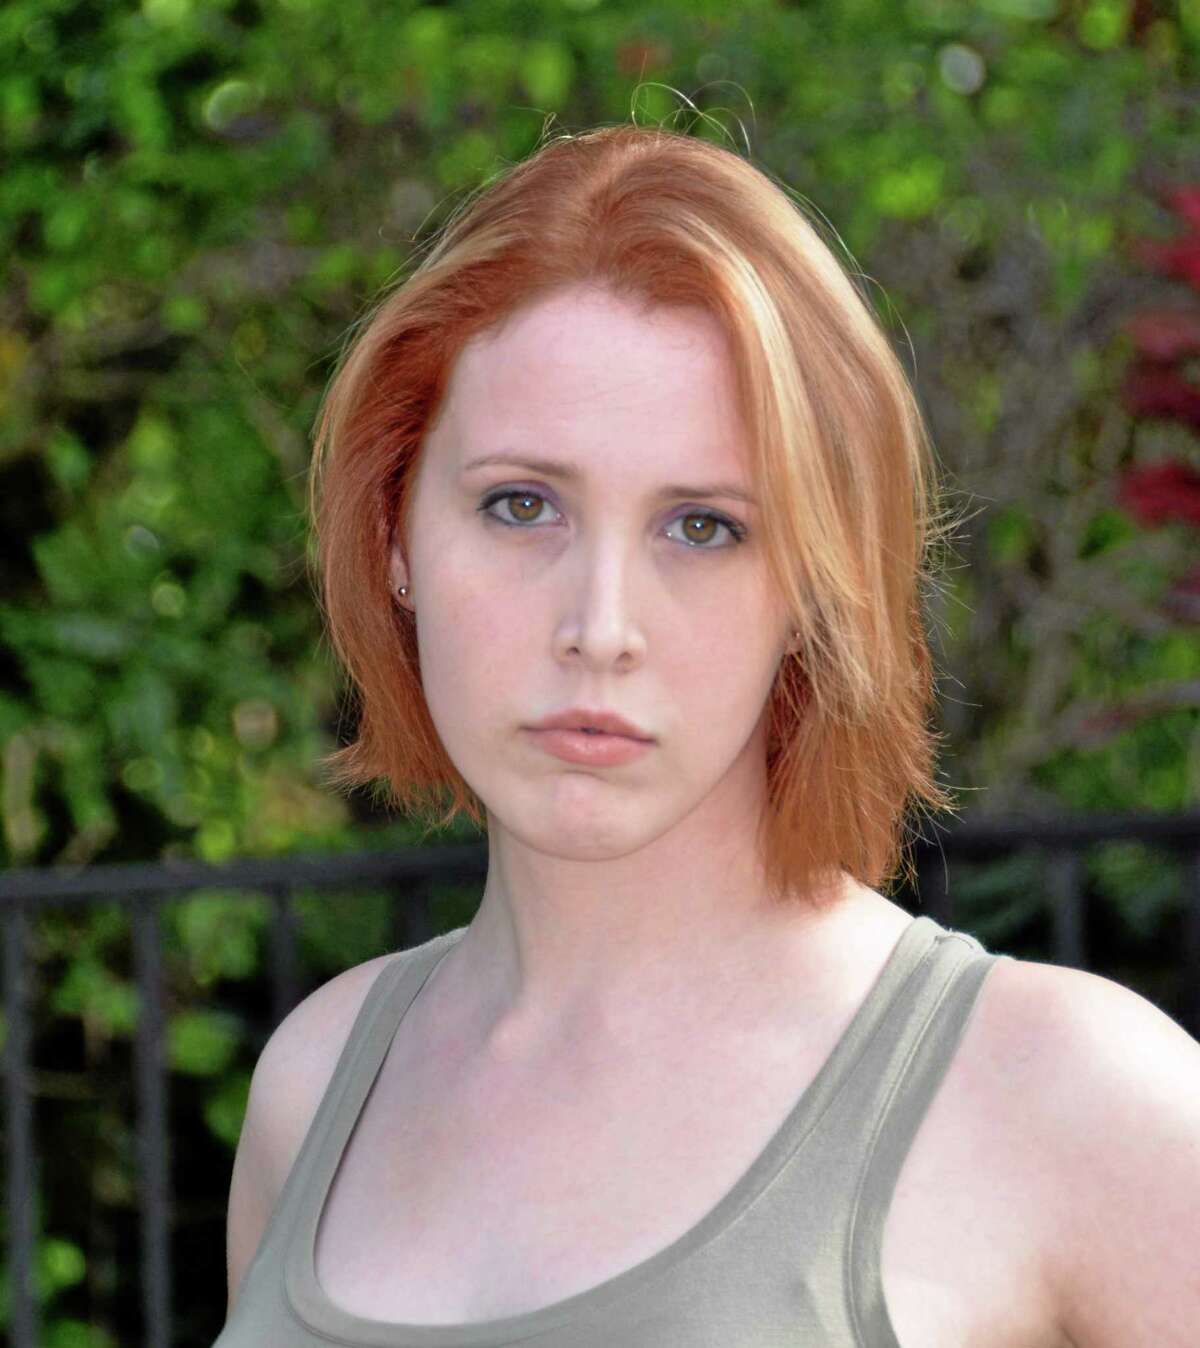 This undated image released by Frances Silver shows Dylan Farrow, daughter of Woody Allen and Mia Farrow. Dylan Farrow recently wrote an open letter to The New York Times detailing alleged abuse by Woody Allen when she was 7 years old. The abuse claims in 1992 were investigated, but Allen was never charged with a crime.